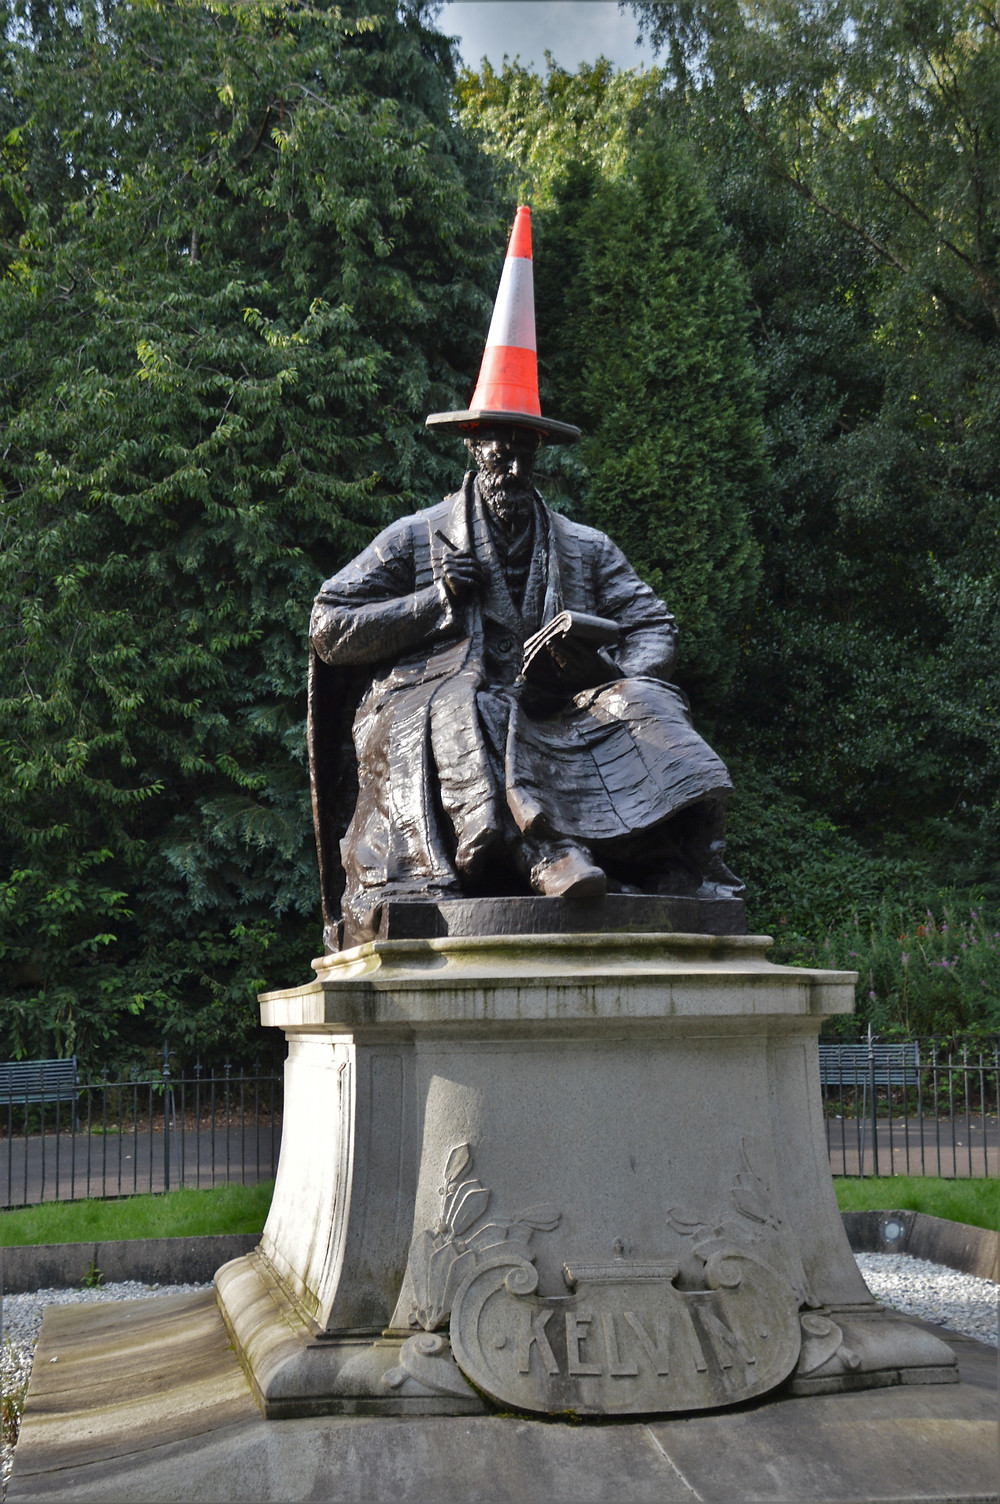 The statue of Lord Kelvin with traffic cone on head in Kelvingrove Park Glasgow